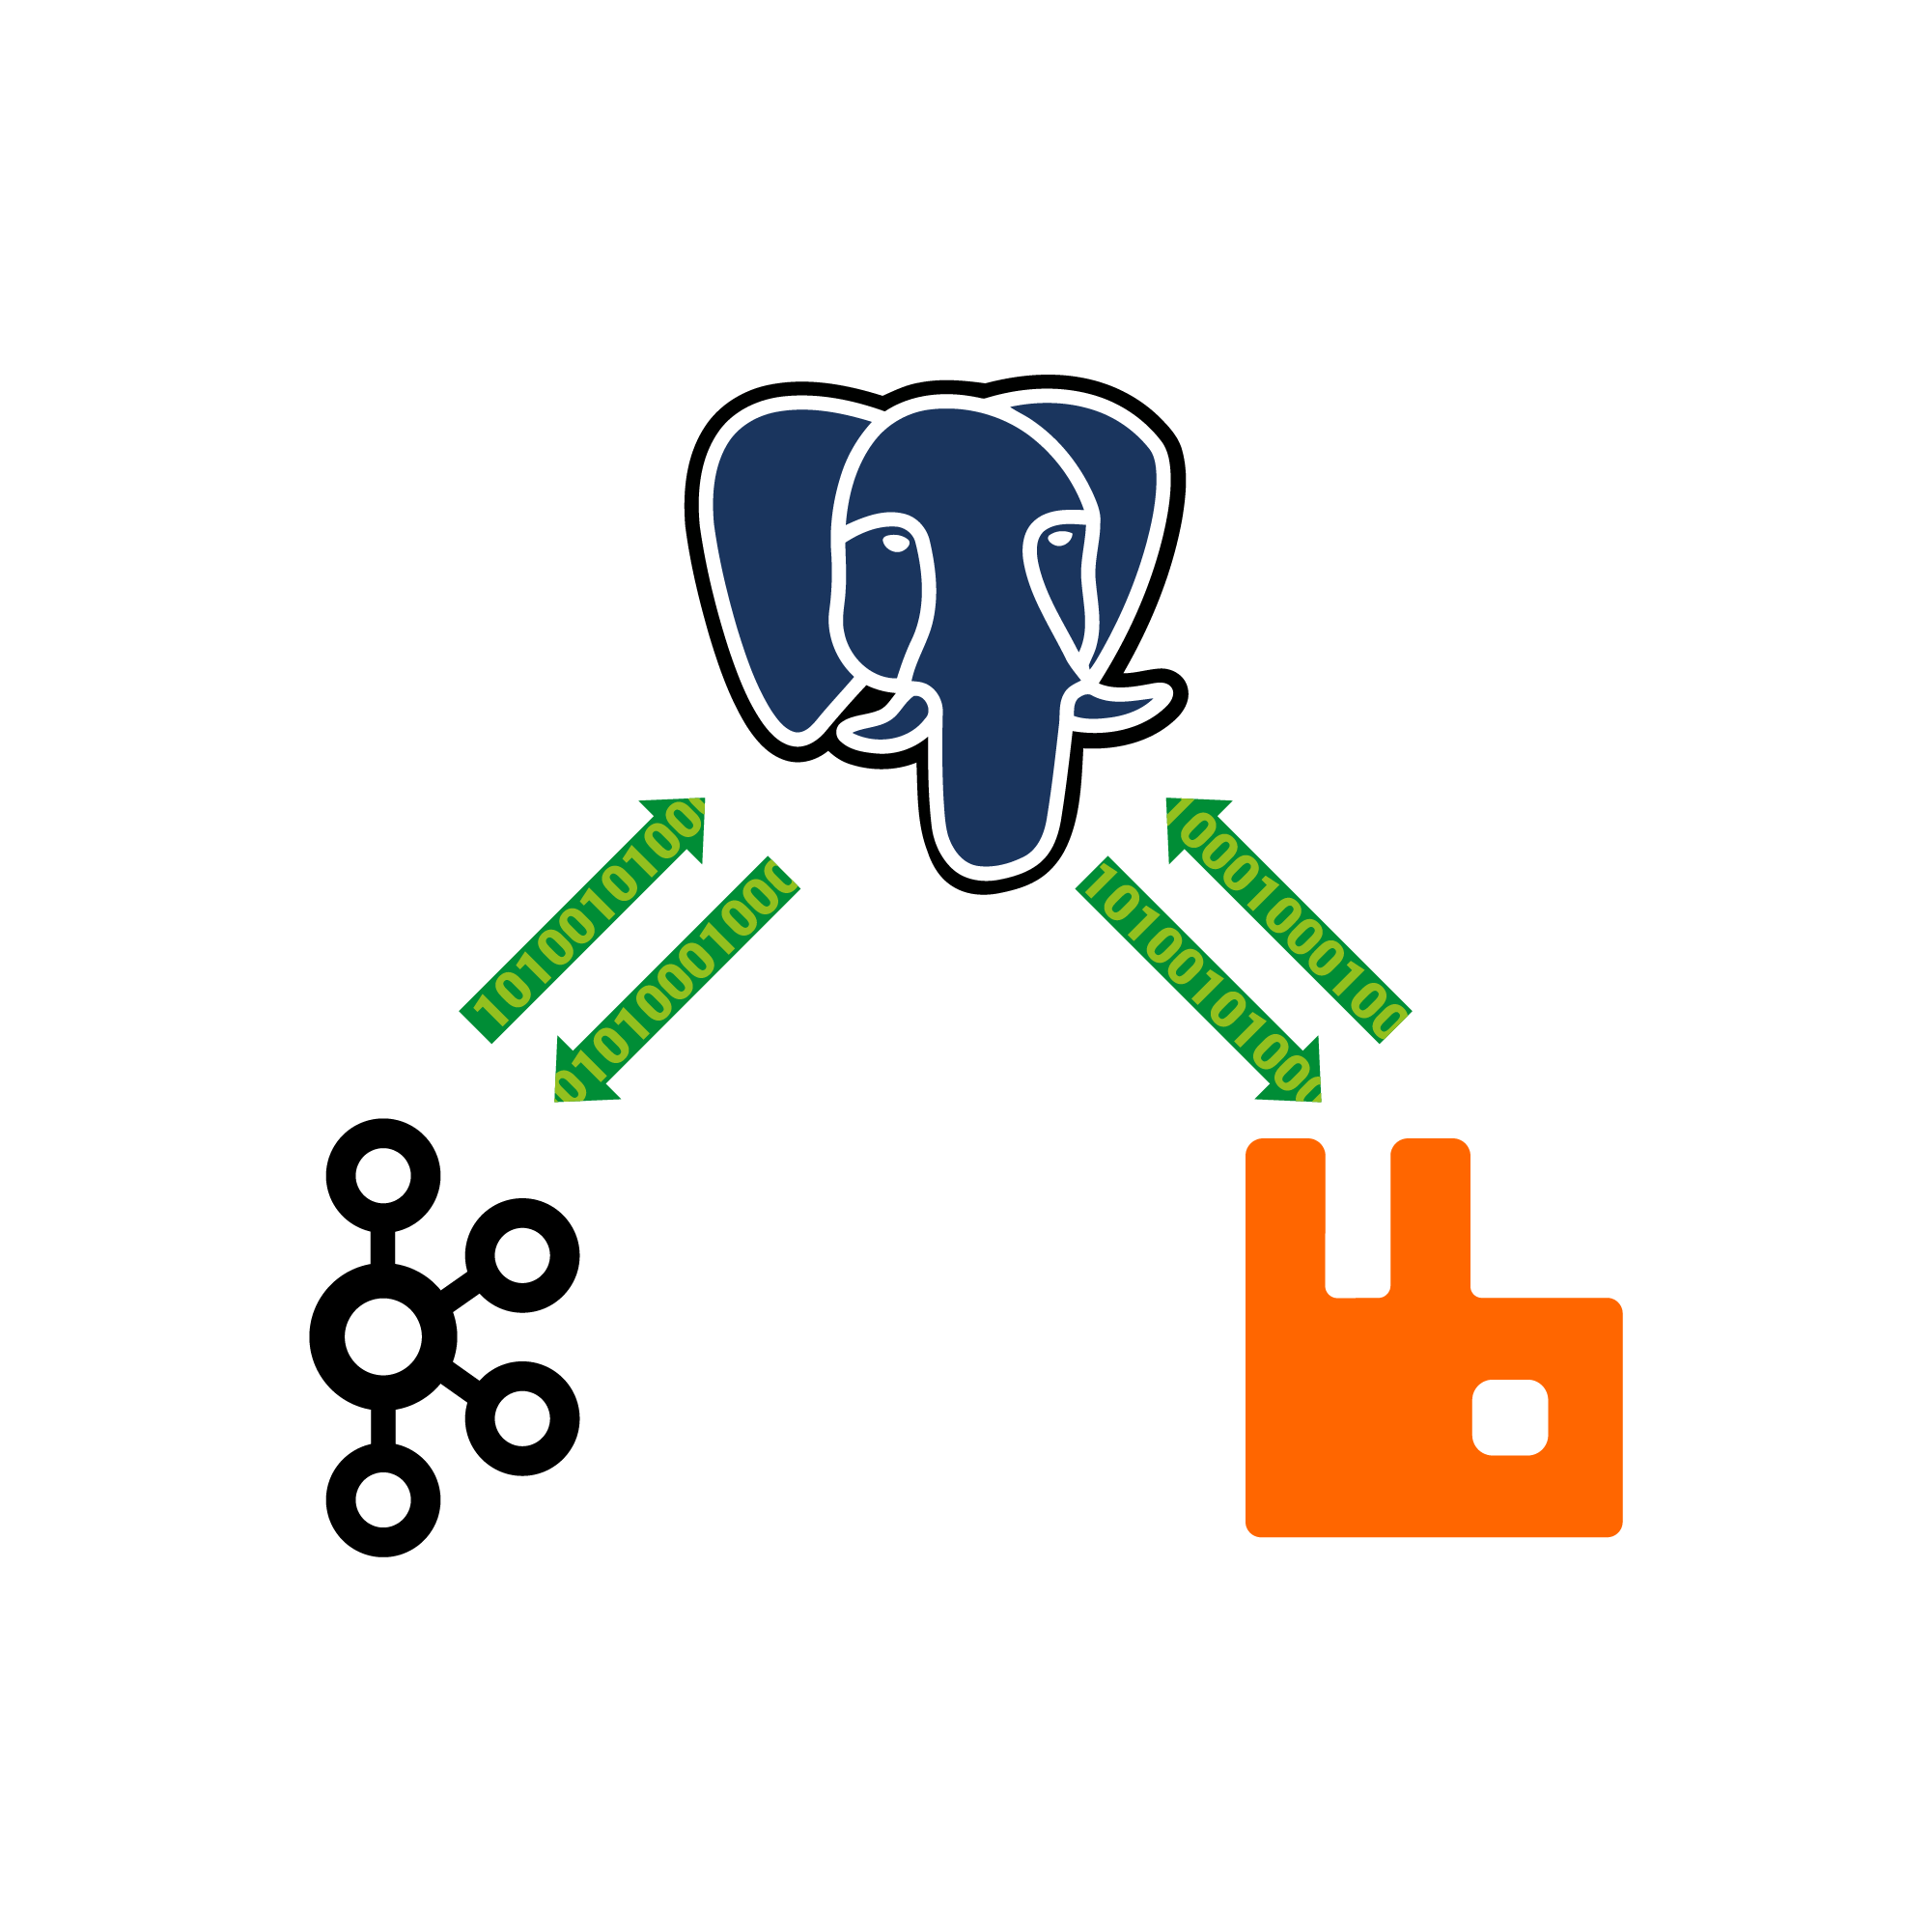 pglogical allows you to connect PostgreSQL with other data sources and targets by creating a pluggable architecture for non-PostgreSQL subscribers and providers. Kafka and RabbitMQ are already supported with many more in the pipeline.